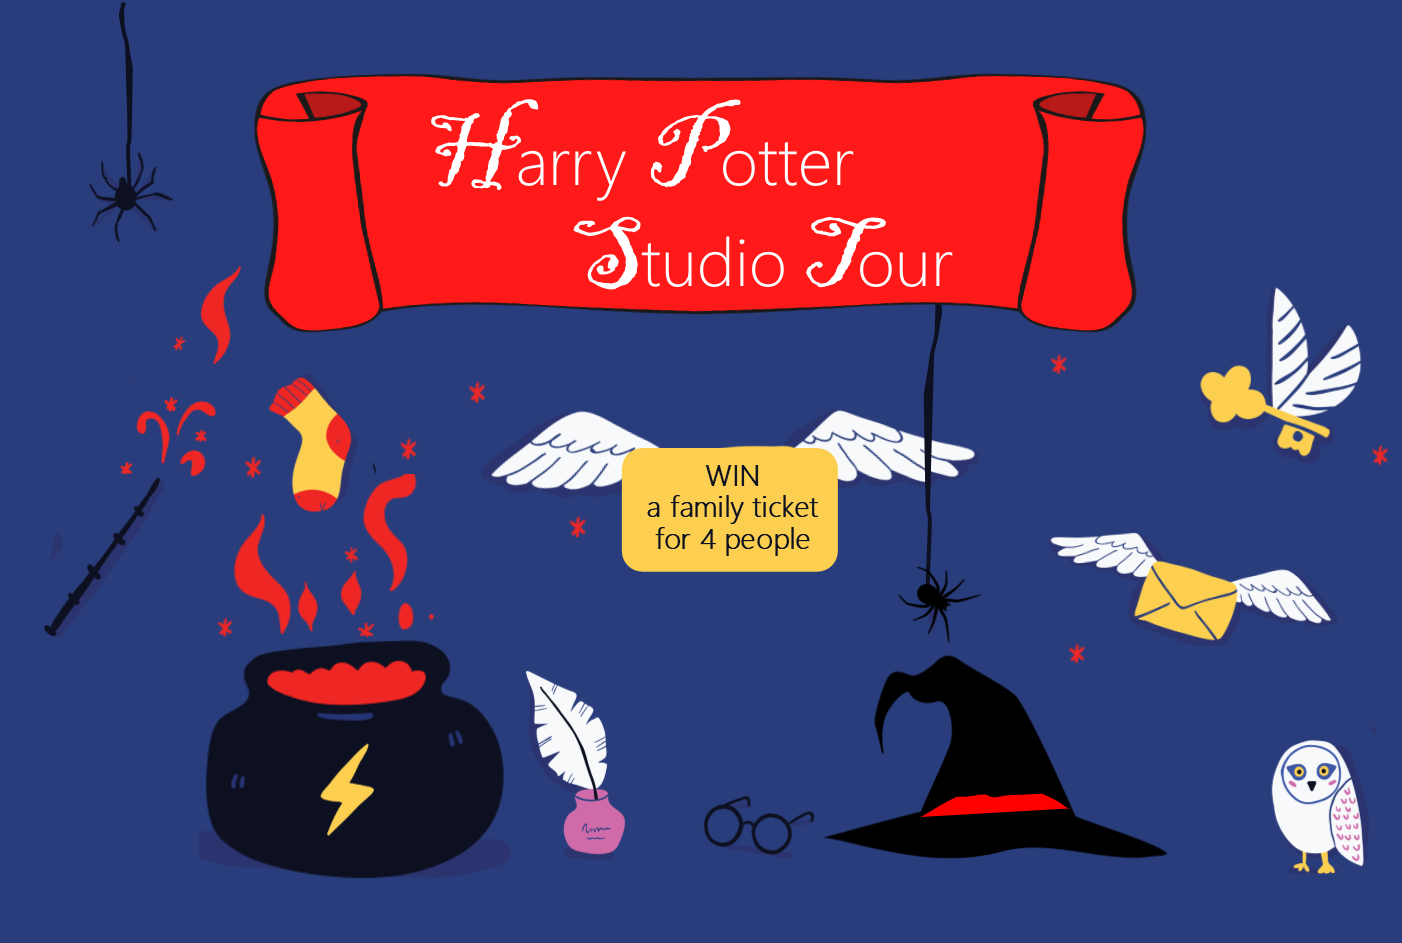 WIN A Family Ticket For The Harry Potter Studio Tour